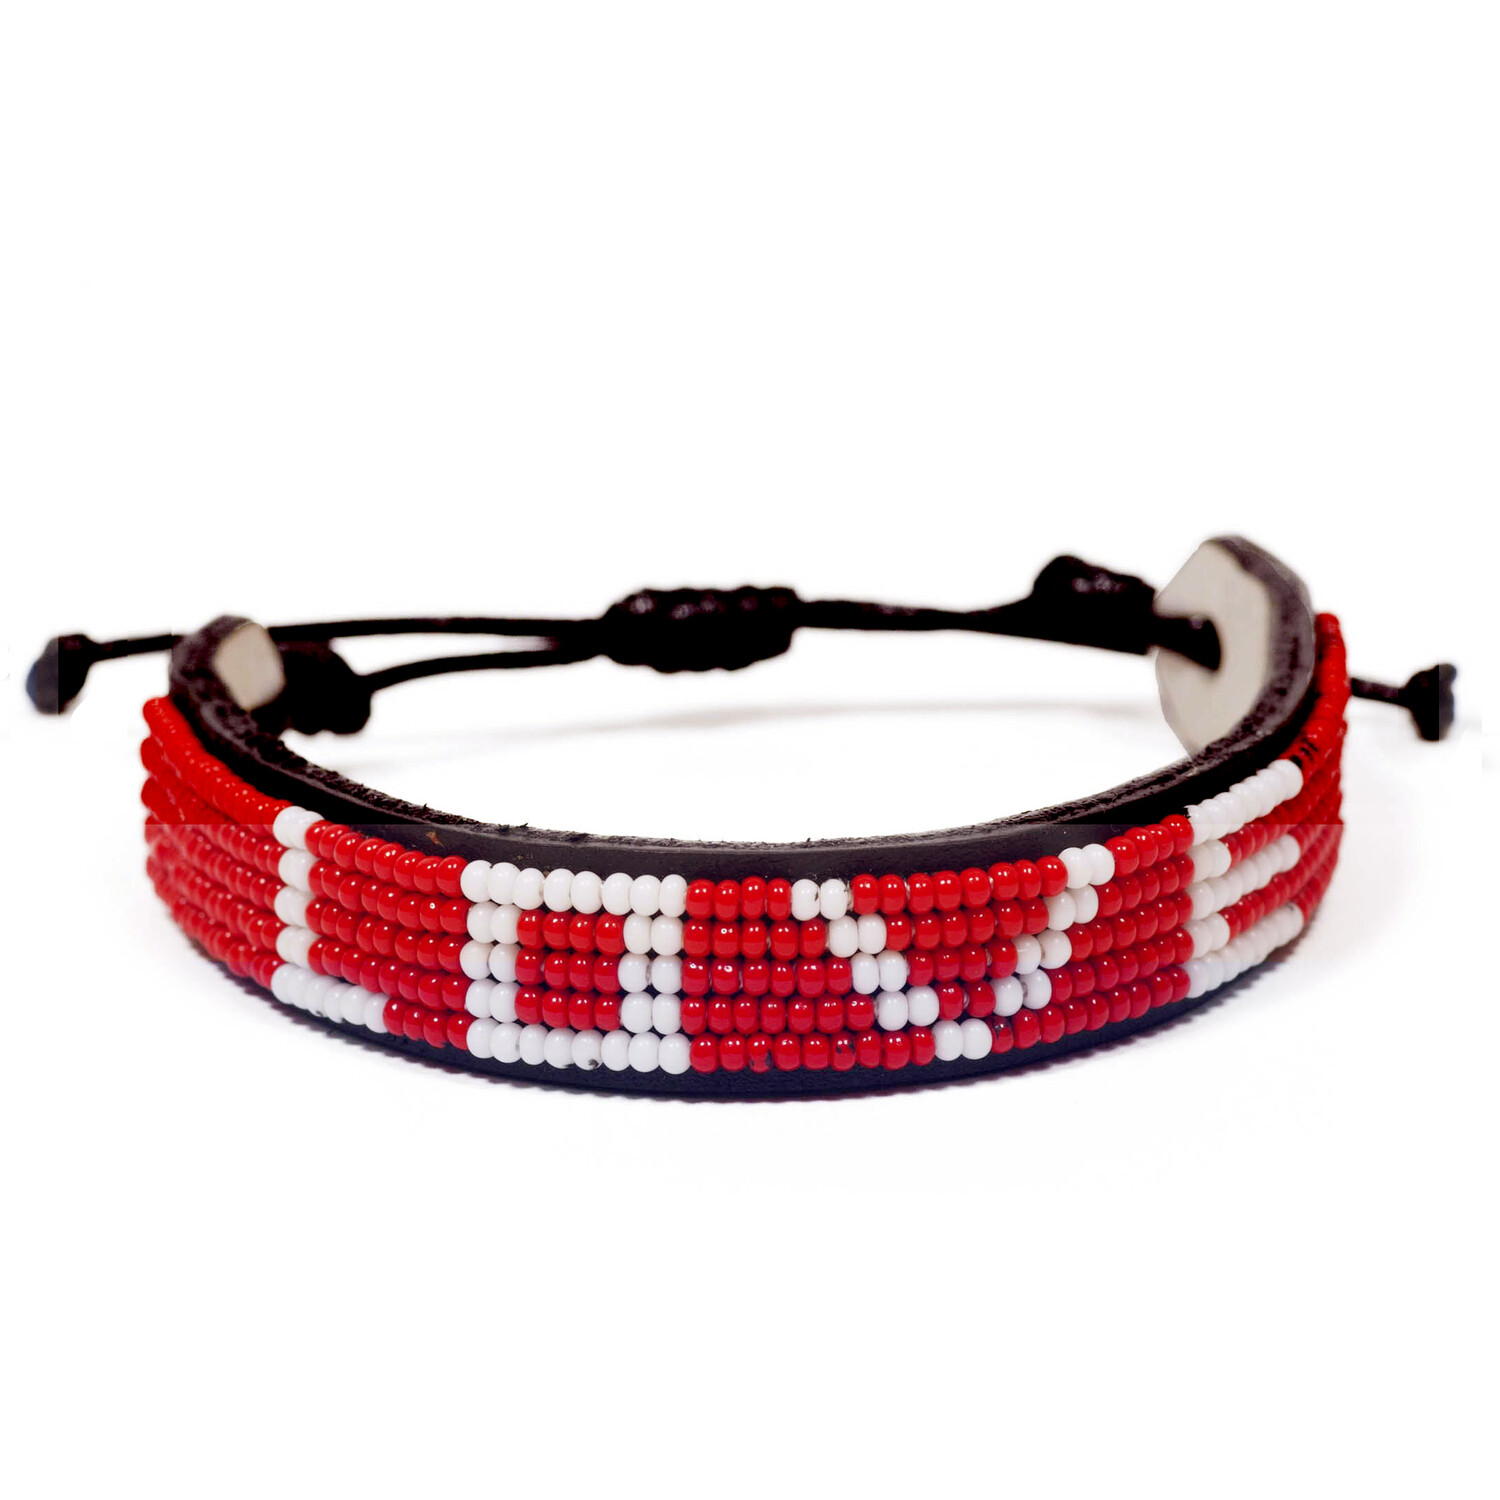 Love is Project Love Bracelet - The Original in Red